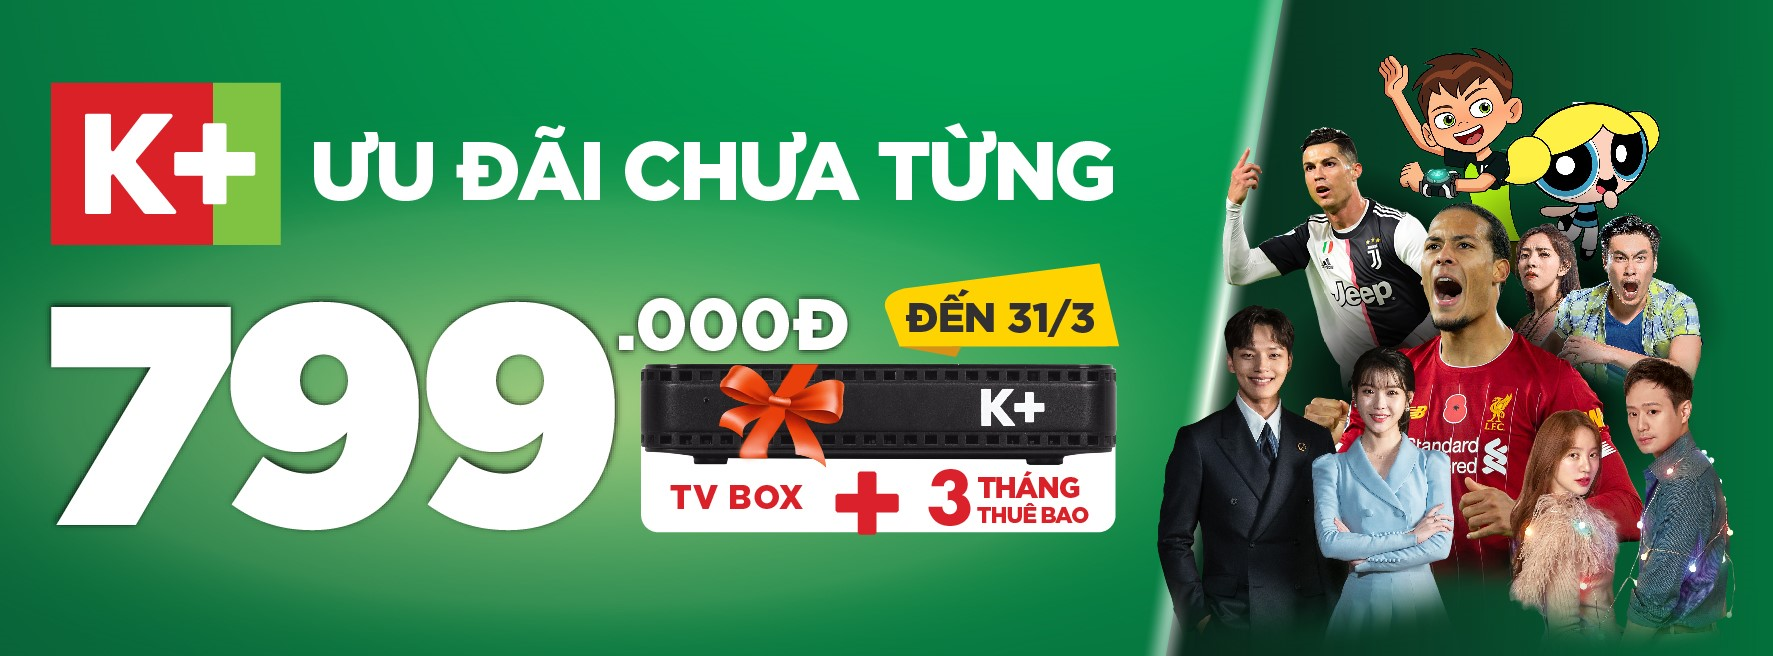 TV BOX 799,000đồng